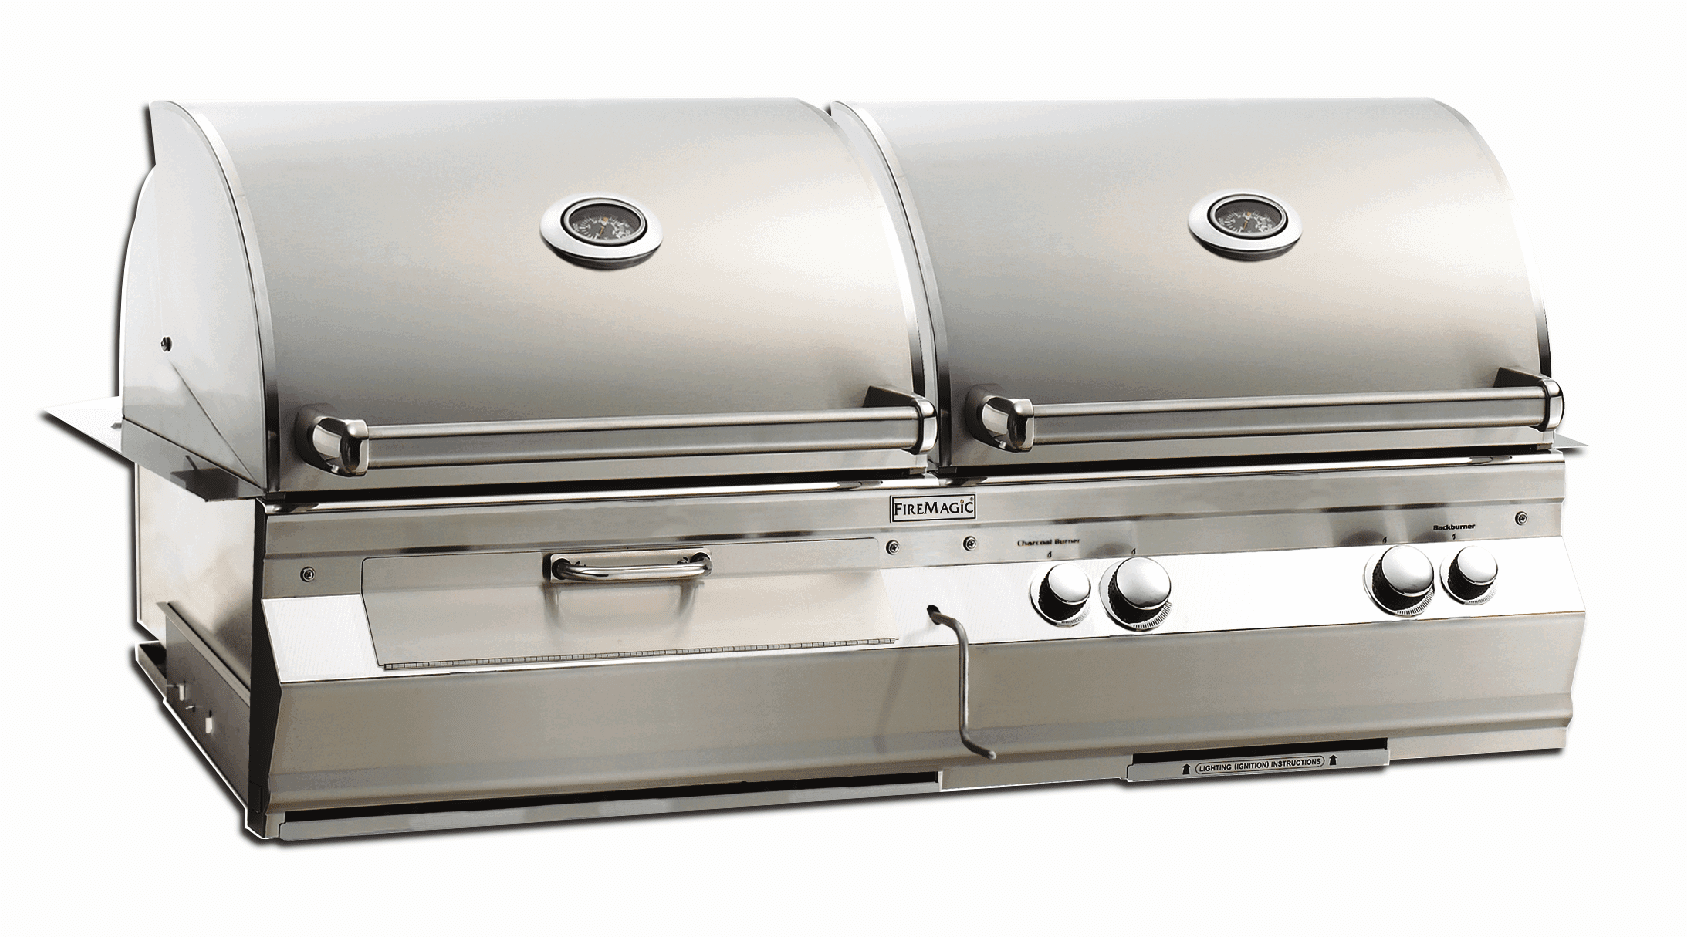 Fire Magic Dual Hood Charcoal and Gas grill built in A830i-5EAN-CB